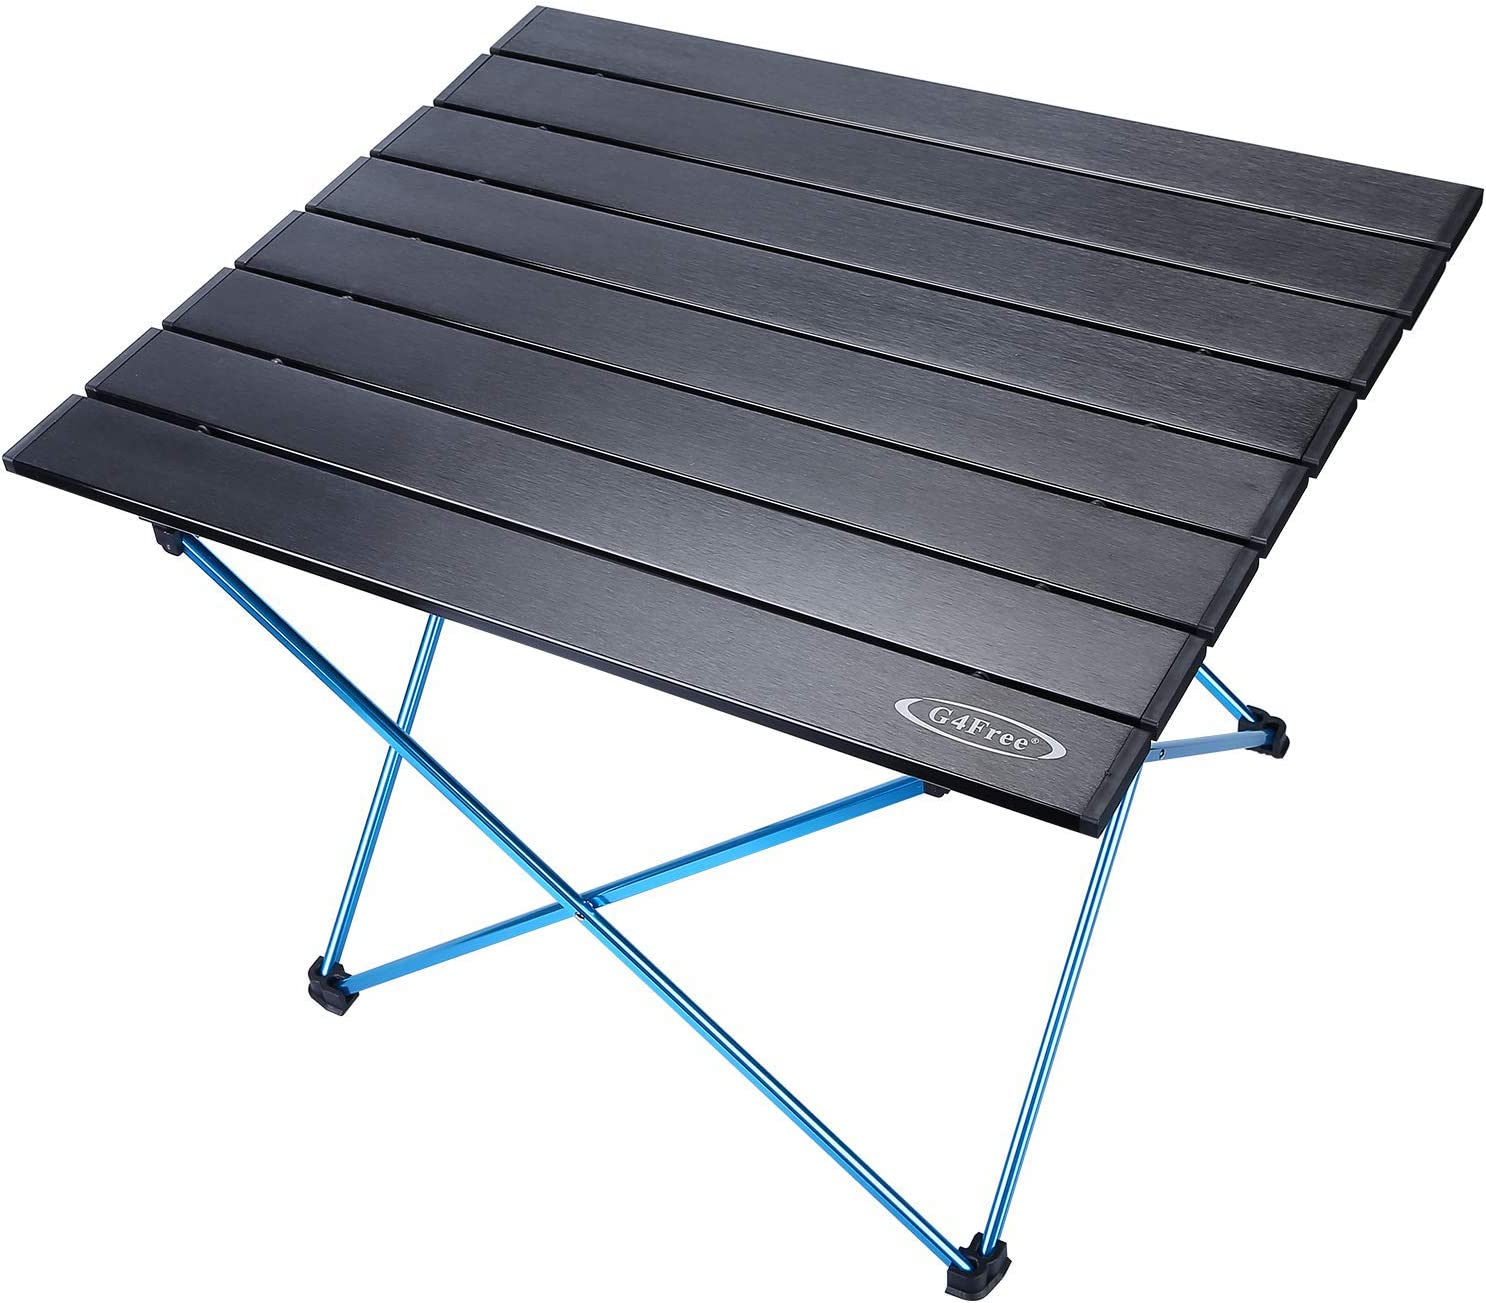 G4Free Portable Camping Table